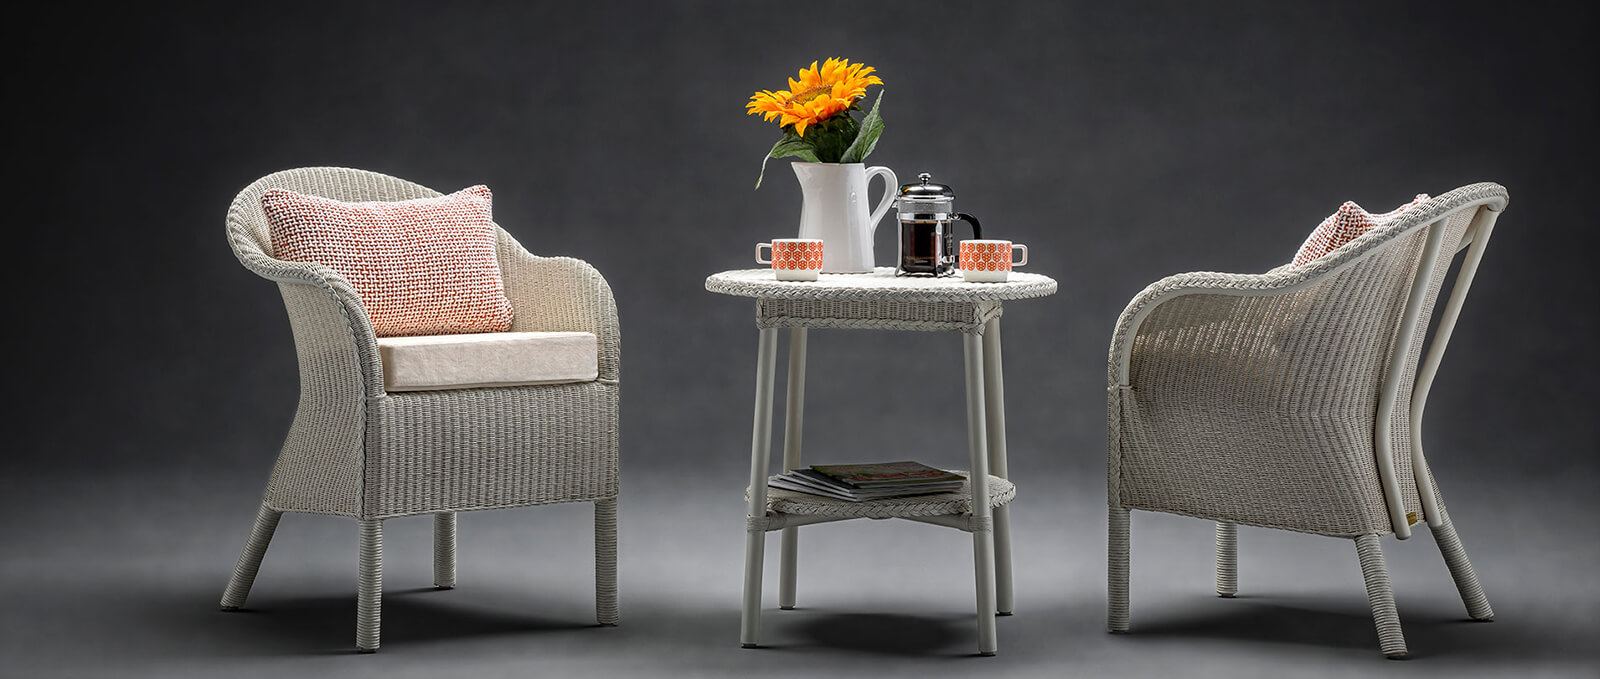 Lloyd Loom Chair and Table Set